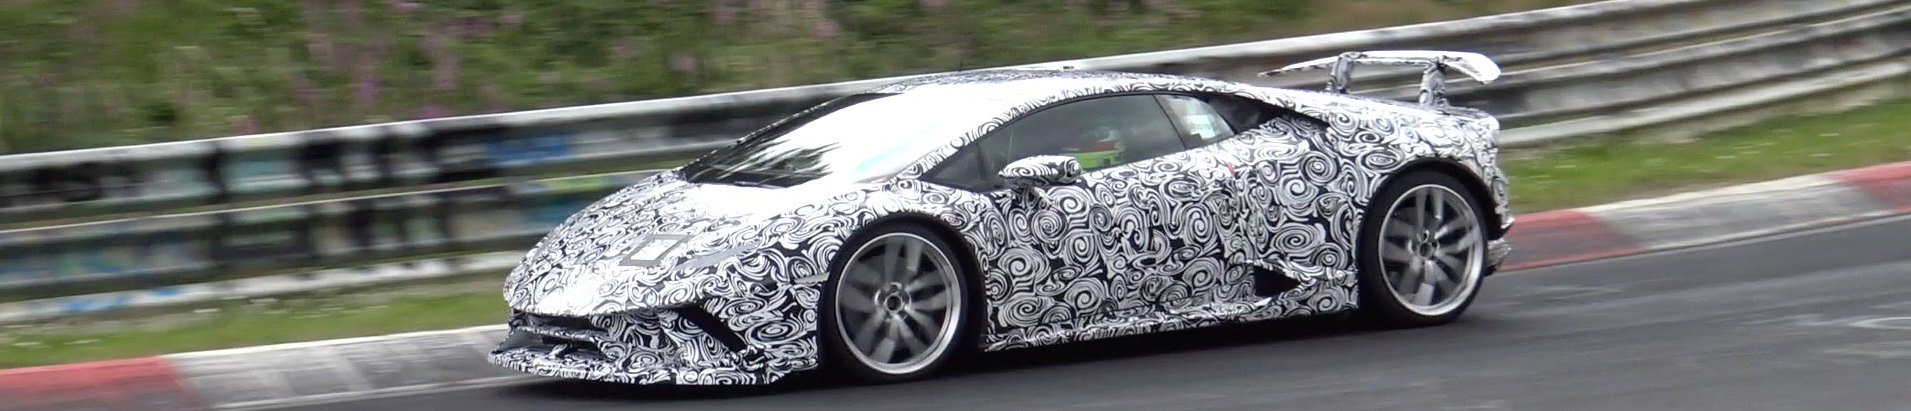 All of the rumors that a lighter and presumably faster Lamborghini Huracan was in the works proved true when a recent video surfaced that were taken at the famed Nurburgring showing a heavily camouflaged Lamborghini Superleggera taking in some laps. The Superleggera is a stripped-down version of the production car that normally also sees improvements made to the suspension and other aspects of the exotic that help to create a more track friendly experience.